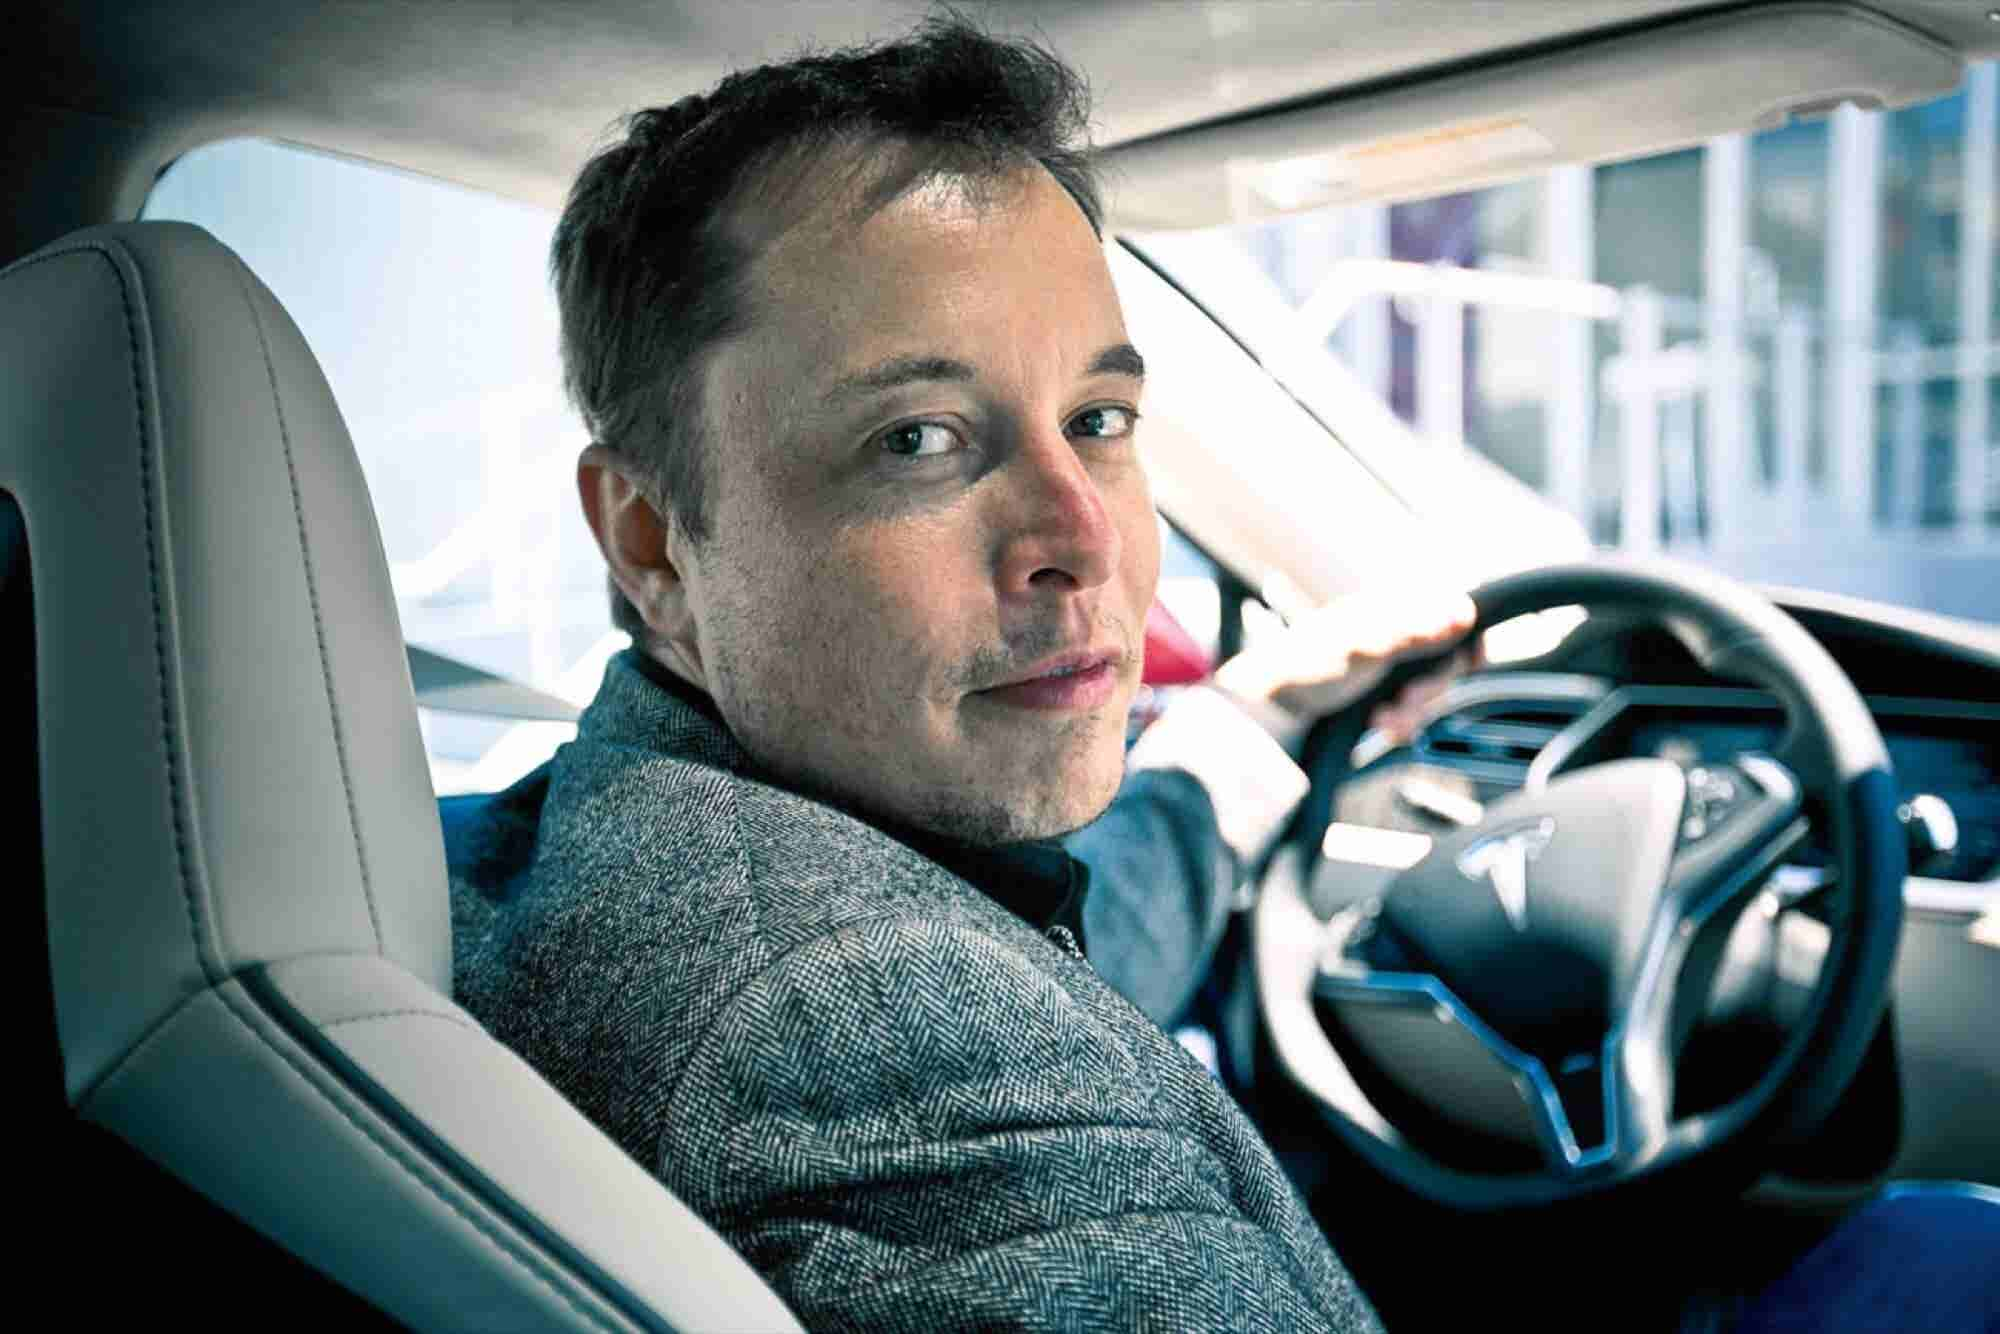 Elon Musk Is Serious About Digging a Tunnel to Avoid Traffic